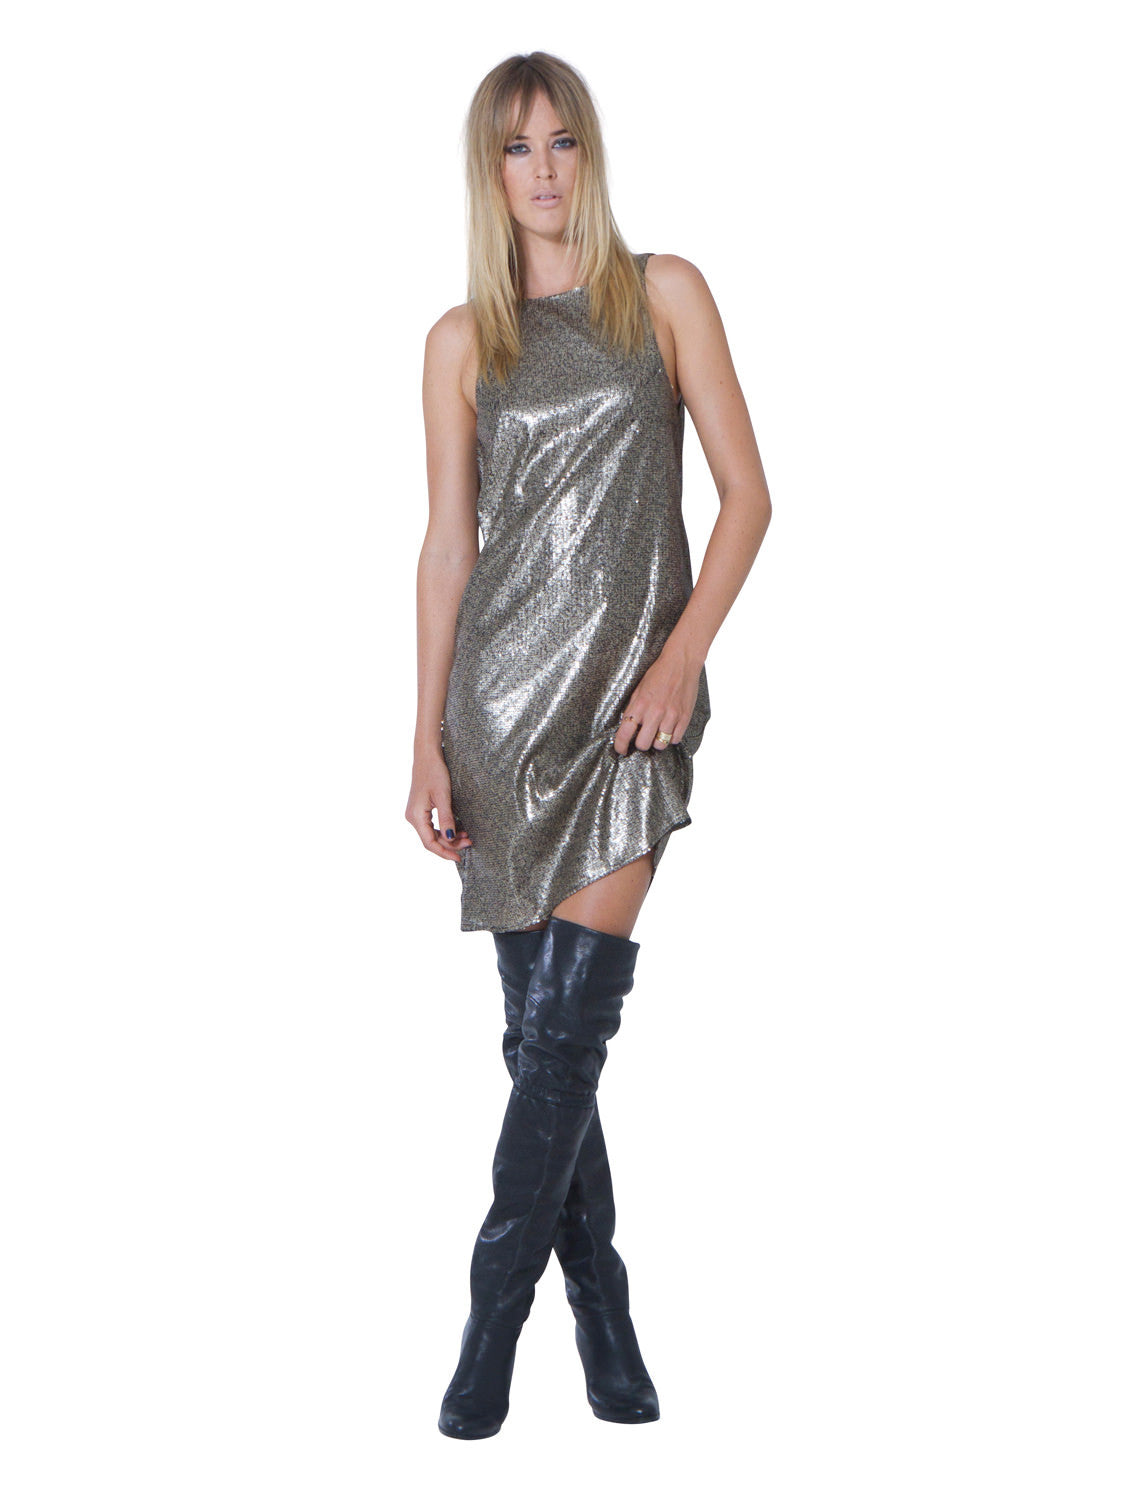 CLOSE TO HEAVEN SEQUIN DRESS - Little Joe Woman by Gail Elliott E-Boutique  - 1